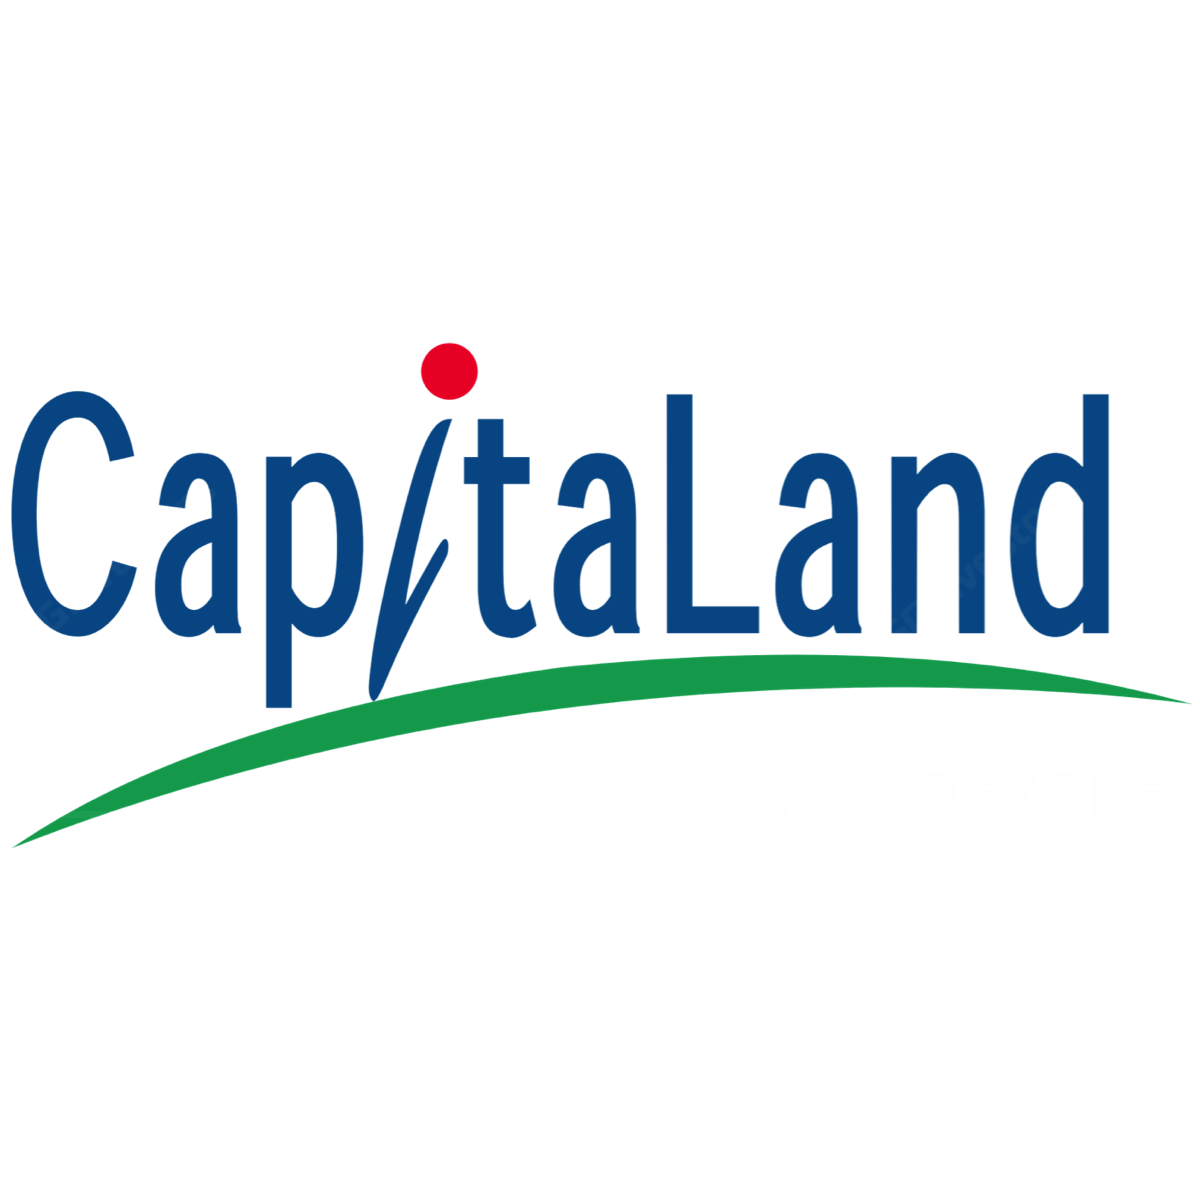 CapitaLand - DBS Vickers 2018-01-08: Focus On Staying Dominant In Core Cities